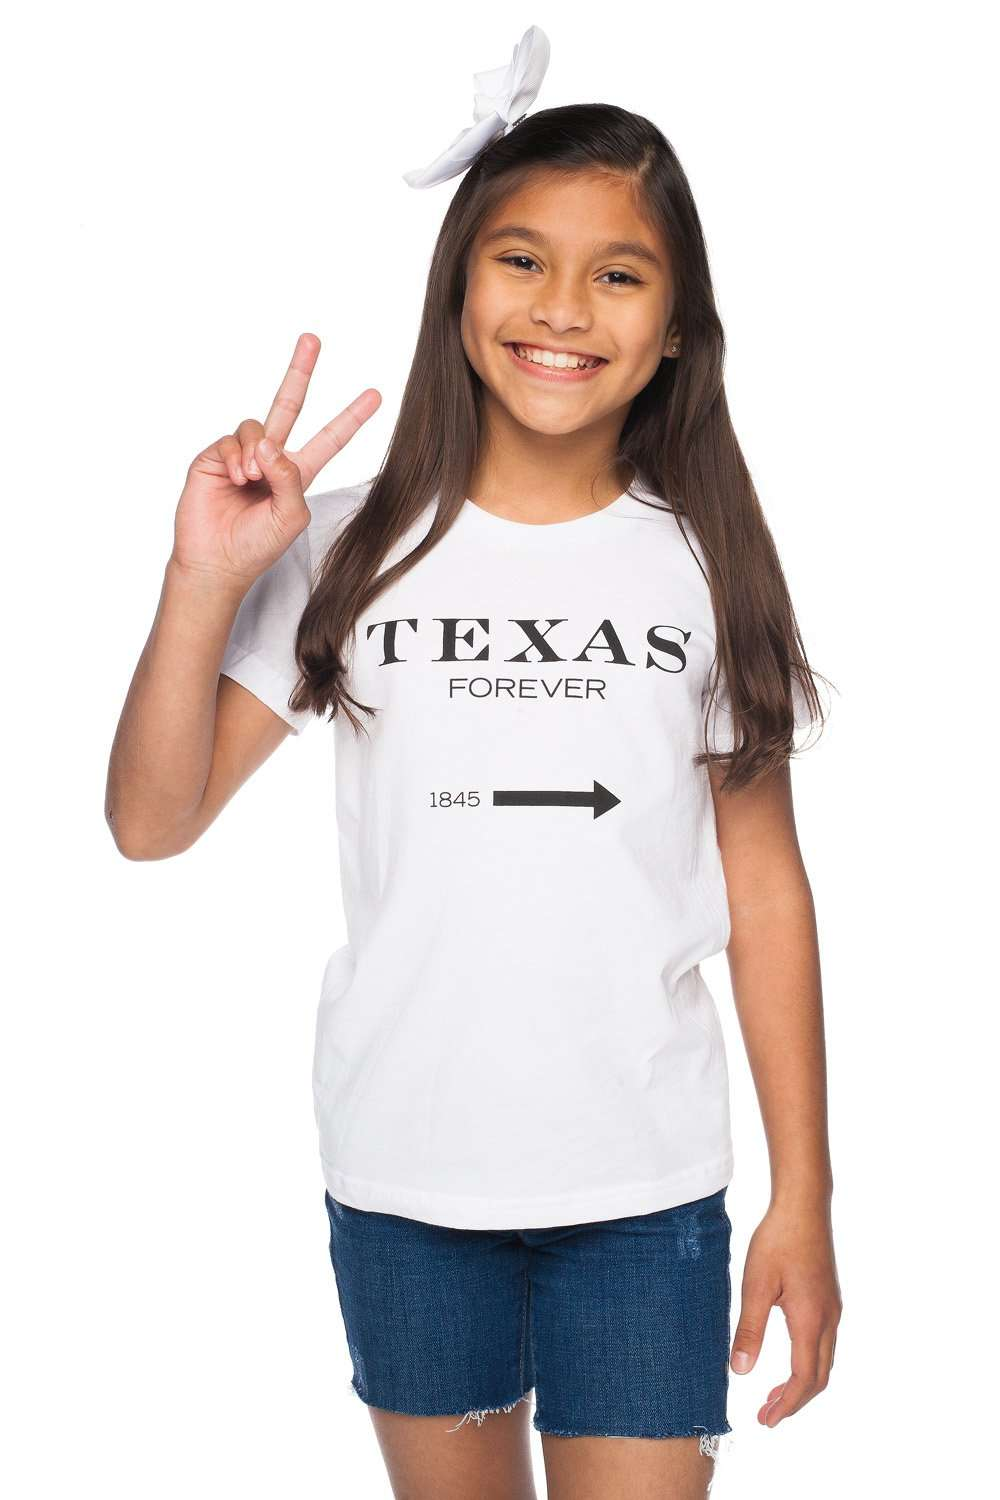 BuddyLove_Witten_Youth_Tee__Texas_Forever__Youth_Small_WhiteBlack